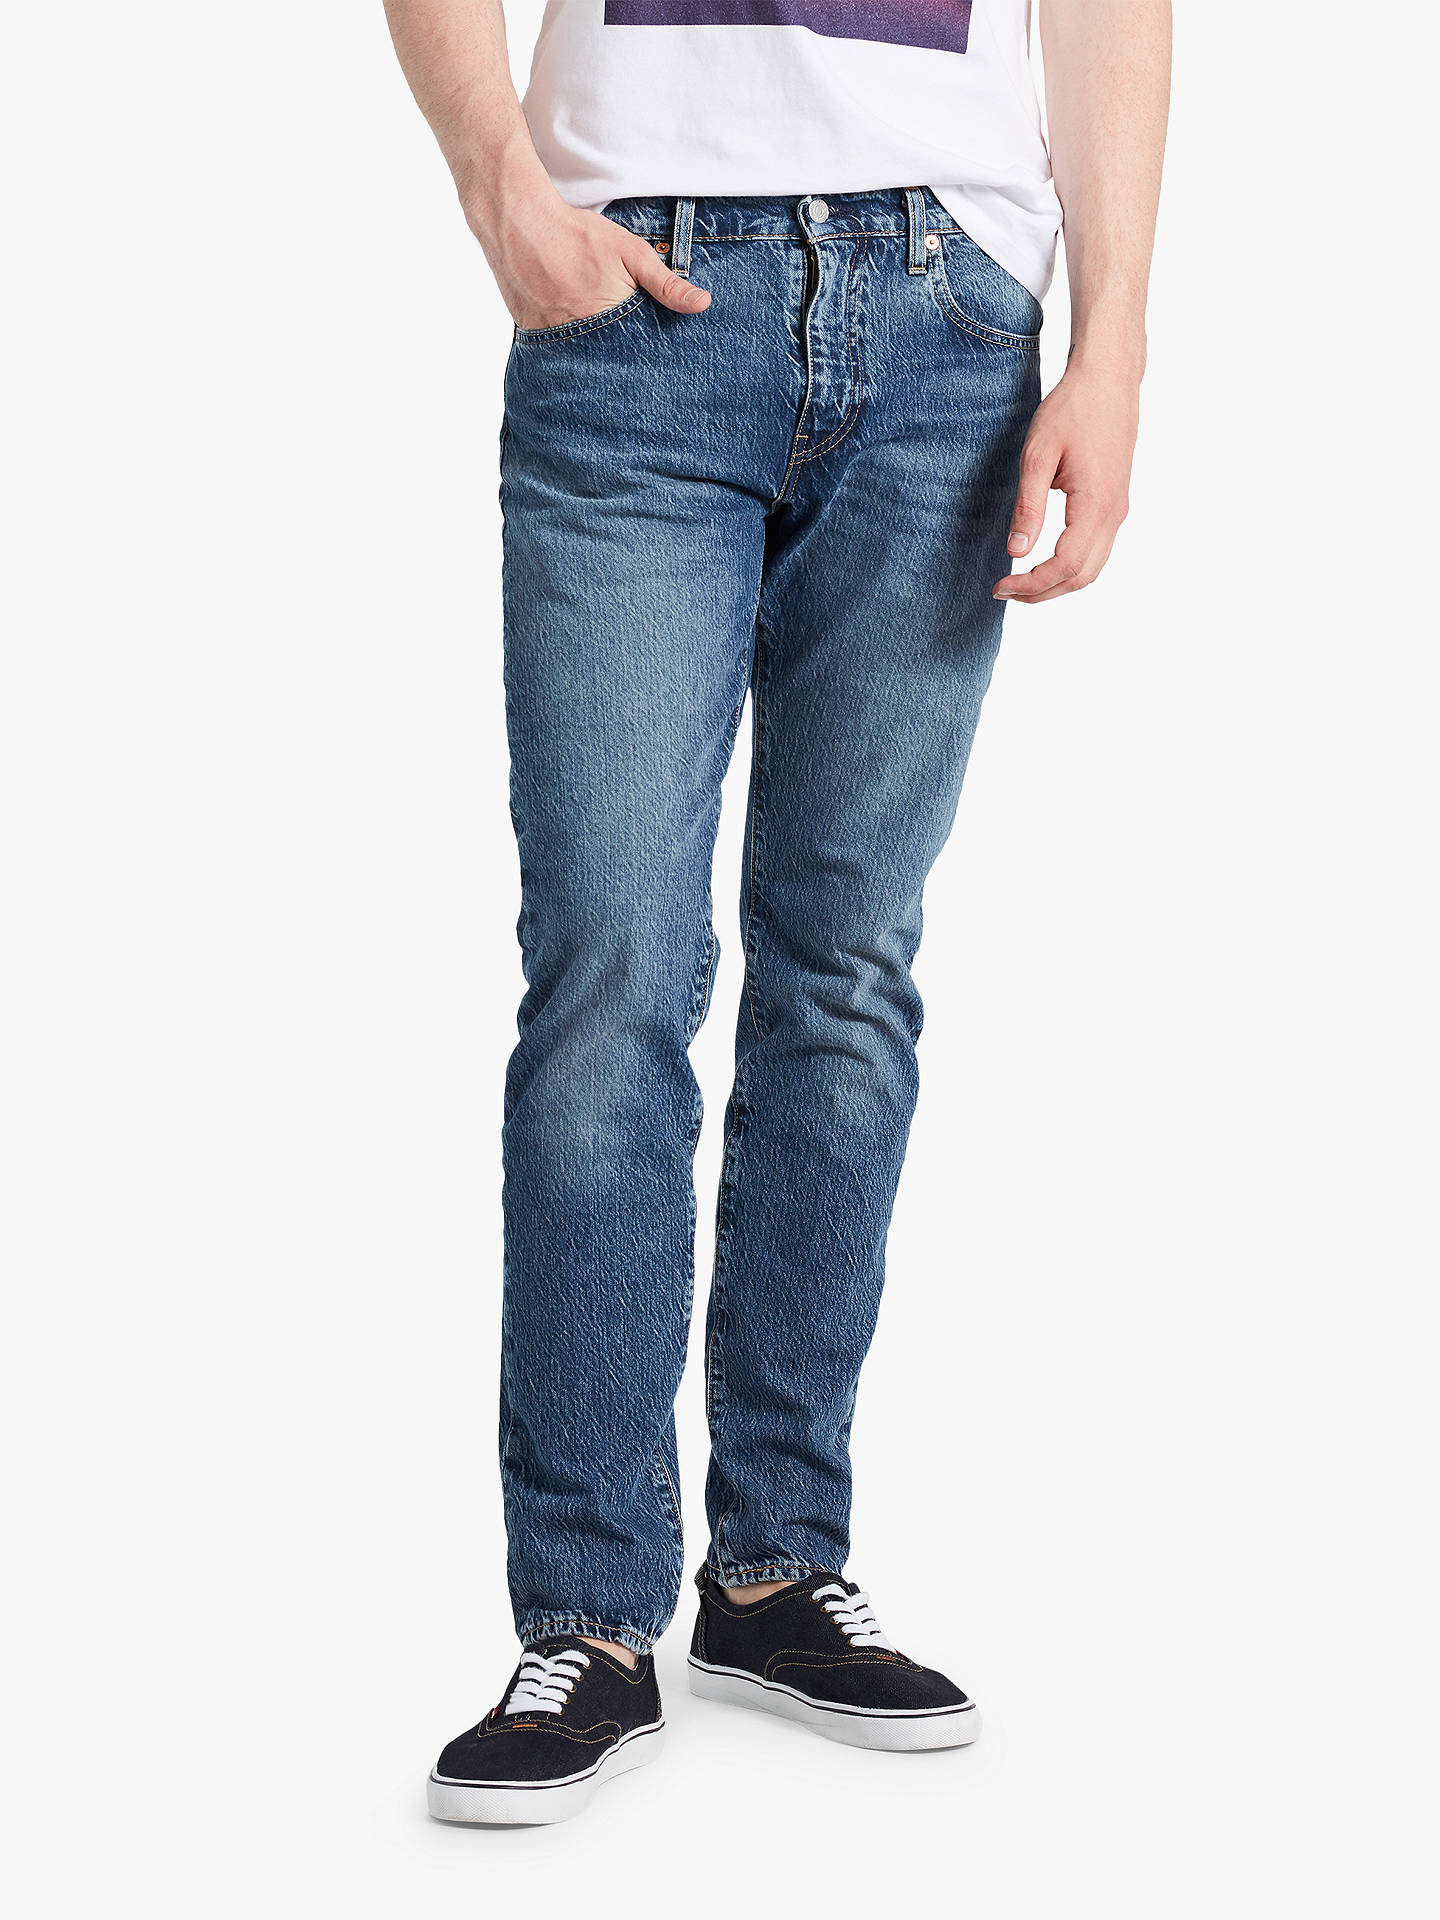 495e5cb86a6 Buy Levi's 512 Slim Tapered Jeans, Marcel Dark, 32R Online at johnlewis. ...